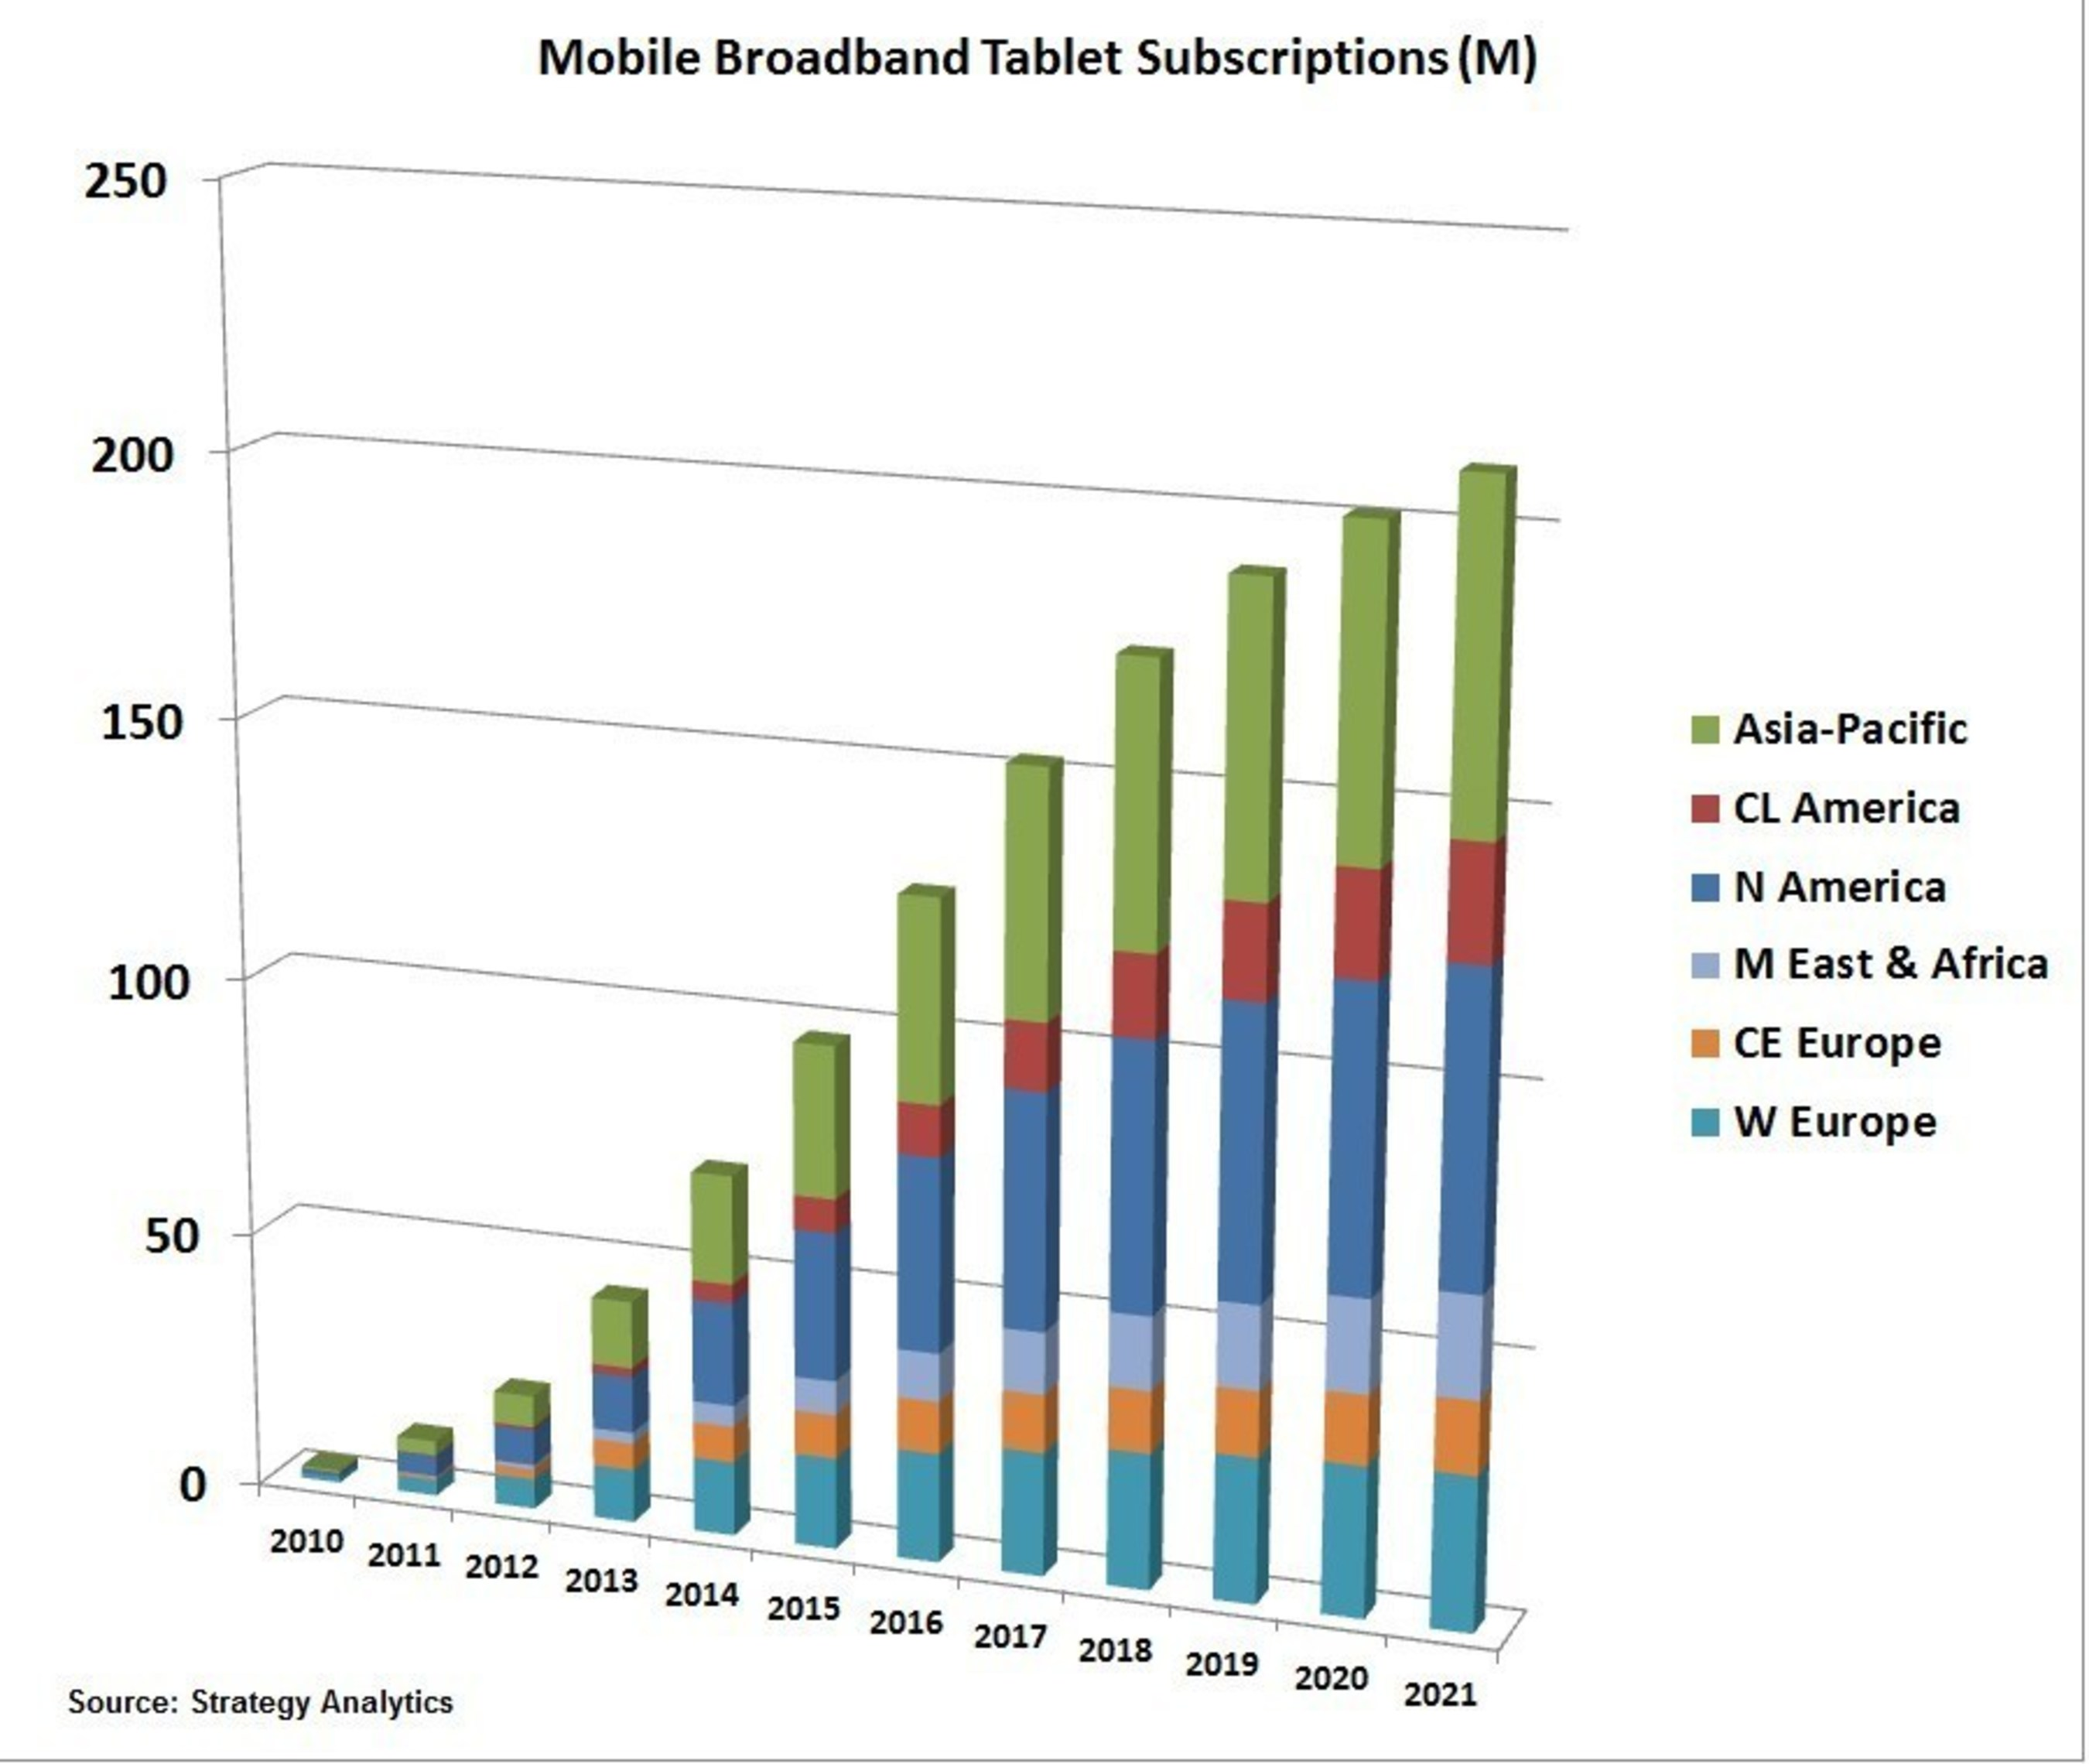 Mobile Broadband Tablet Subscriptions to Double to 200 Million by 2021, says Strategy Analytics